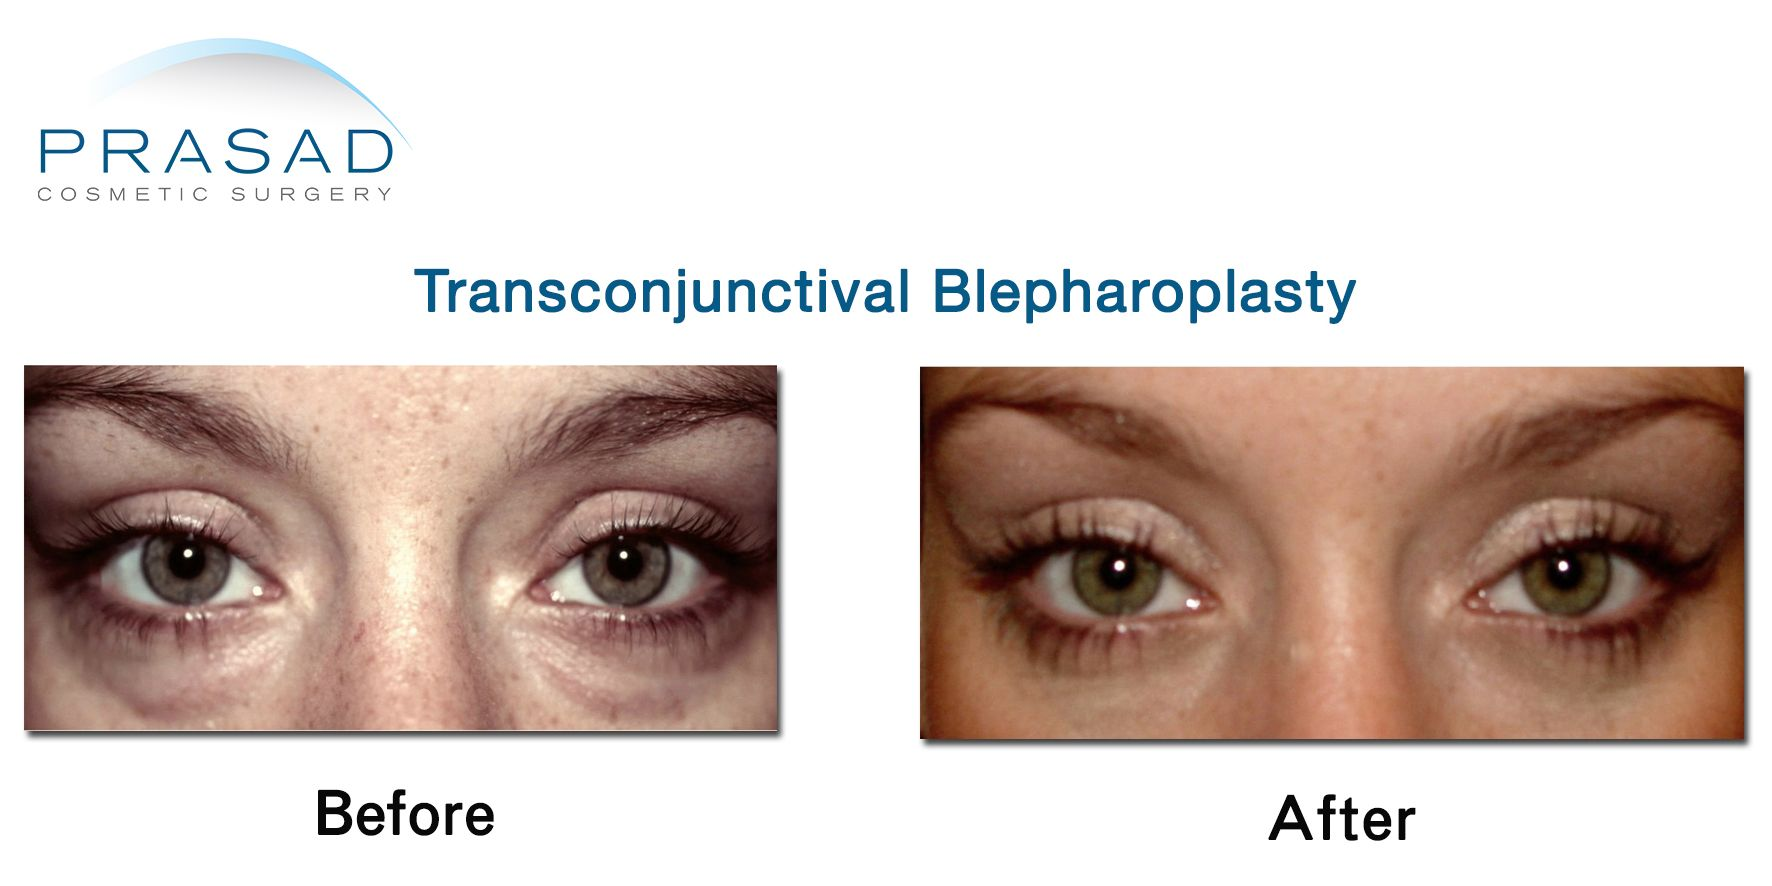 Female Transconjunctival Blepharoplasty Before and After 02 cropped Transconjunctival Blepharoplasty